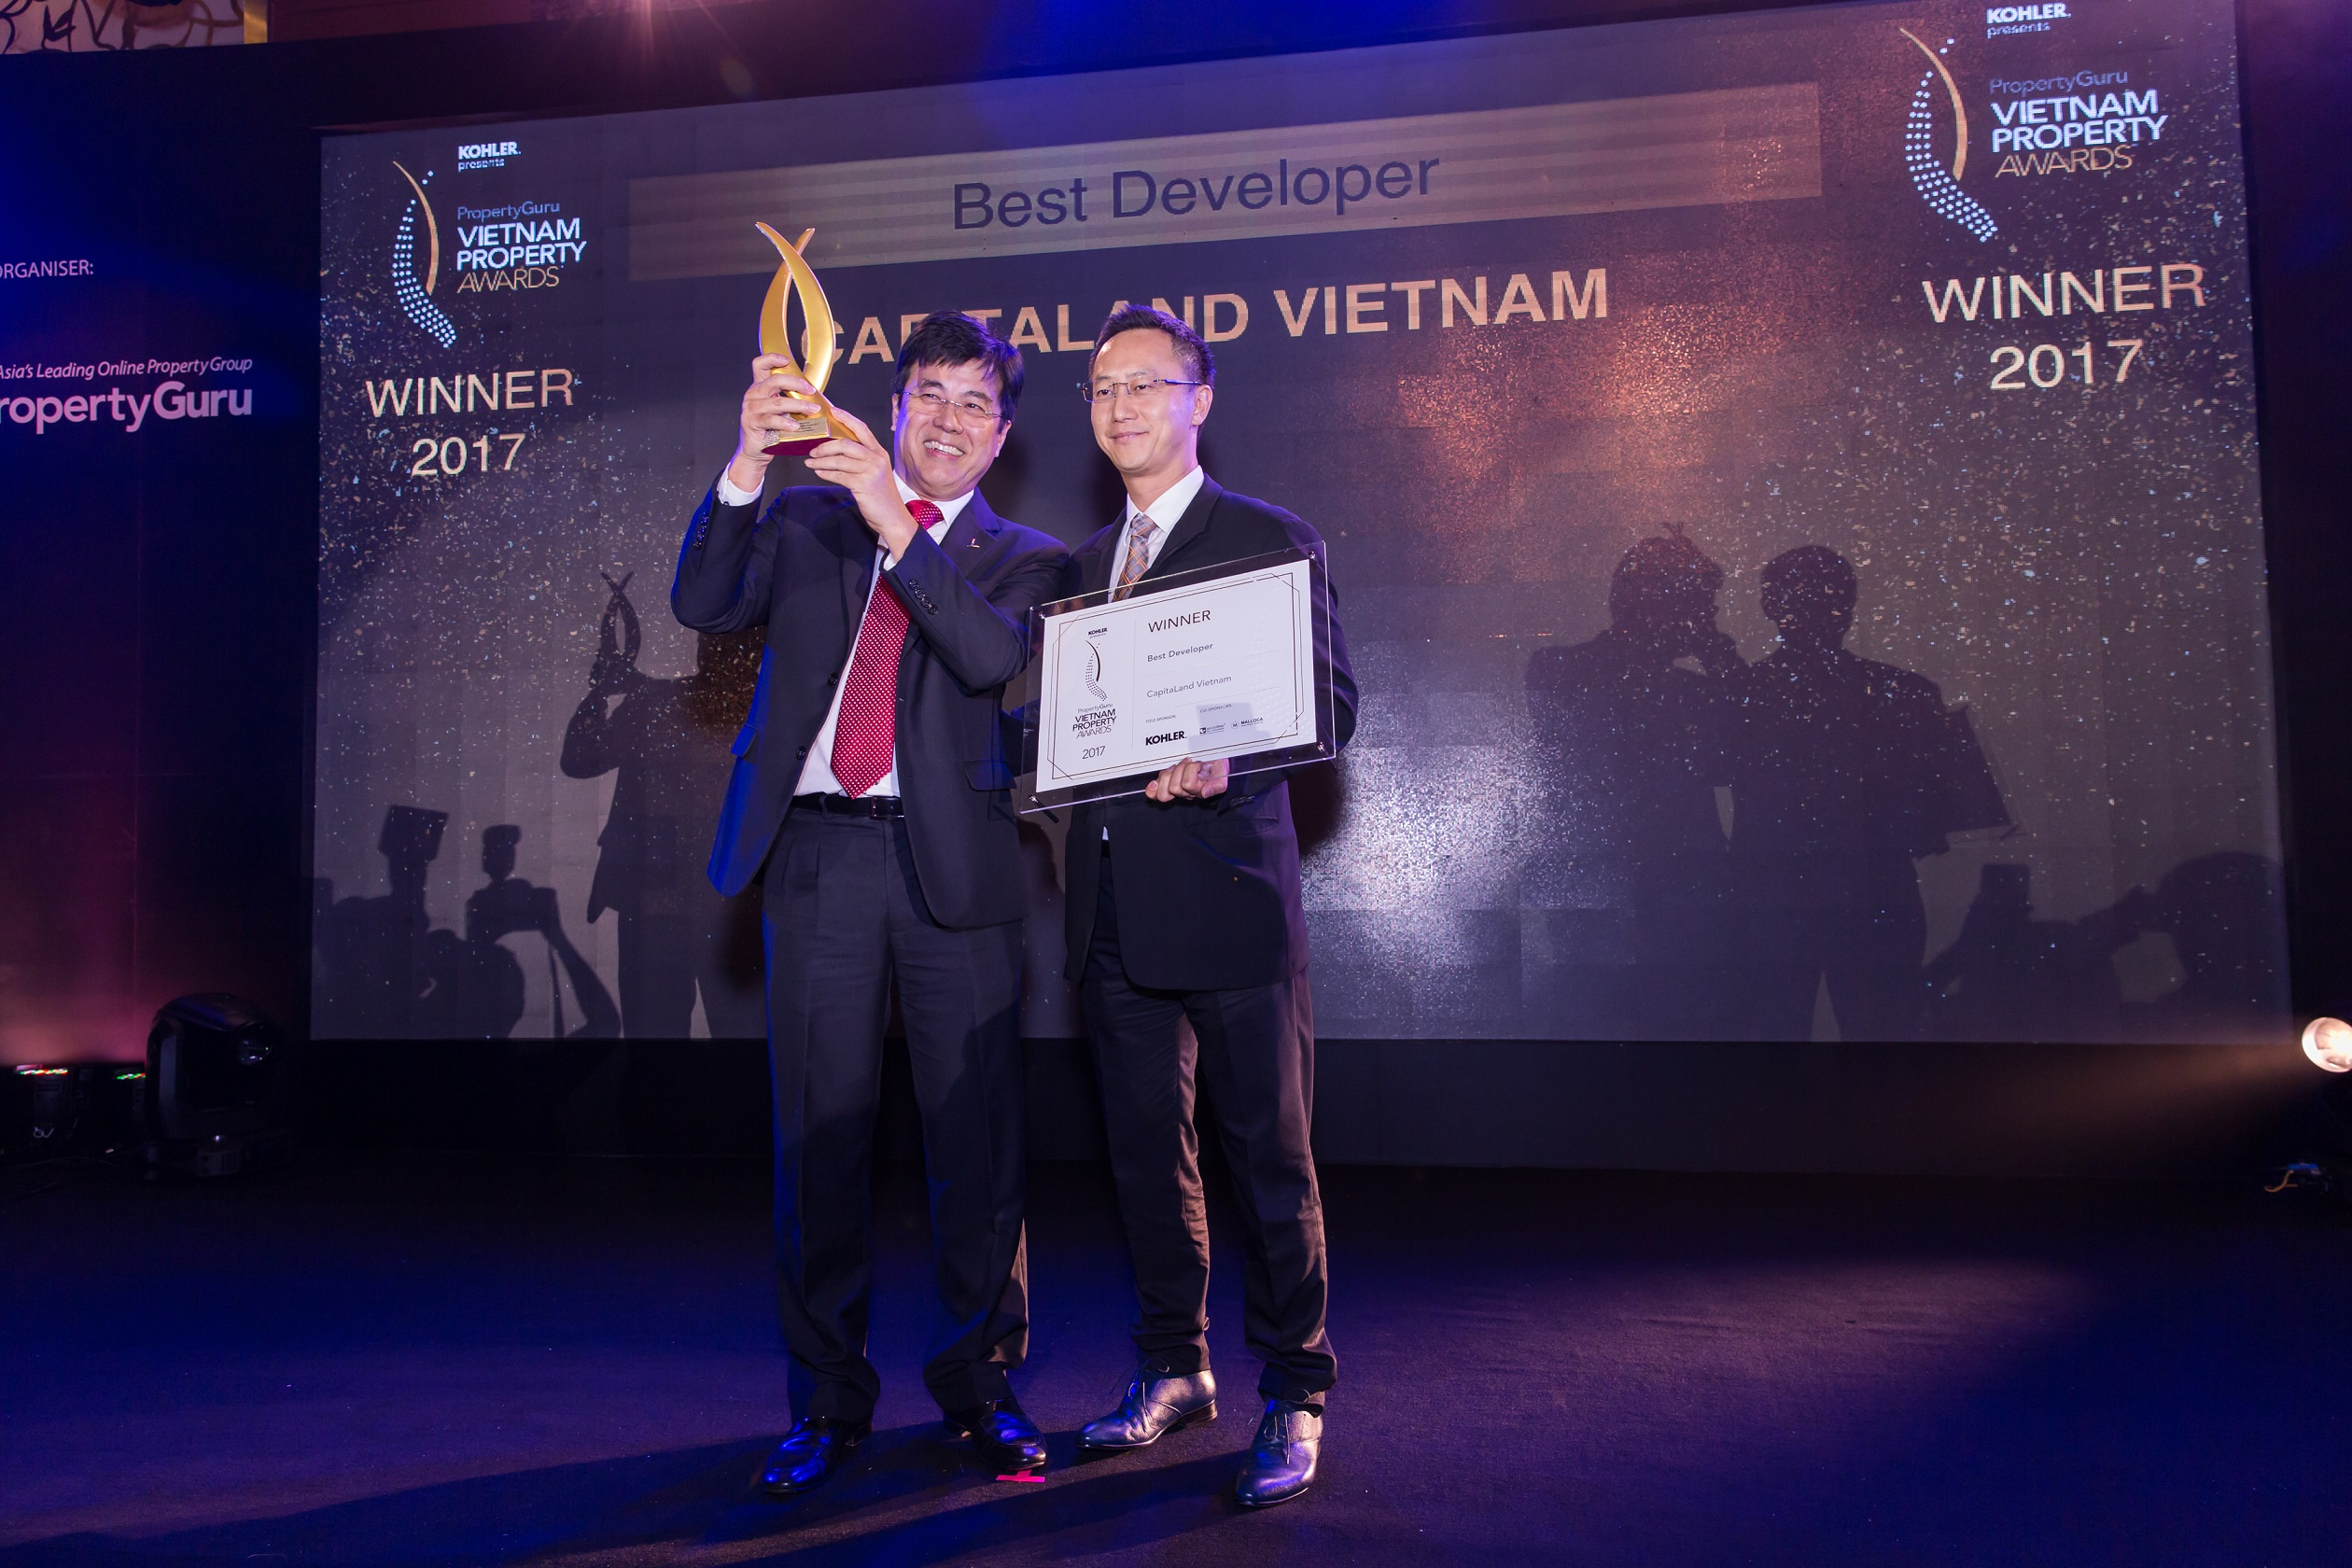 CapitaLand breaks 22-year record with 11 Vietnam Property Awards